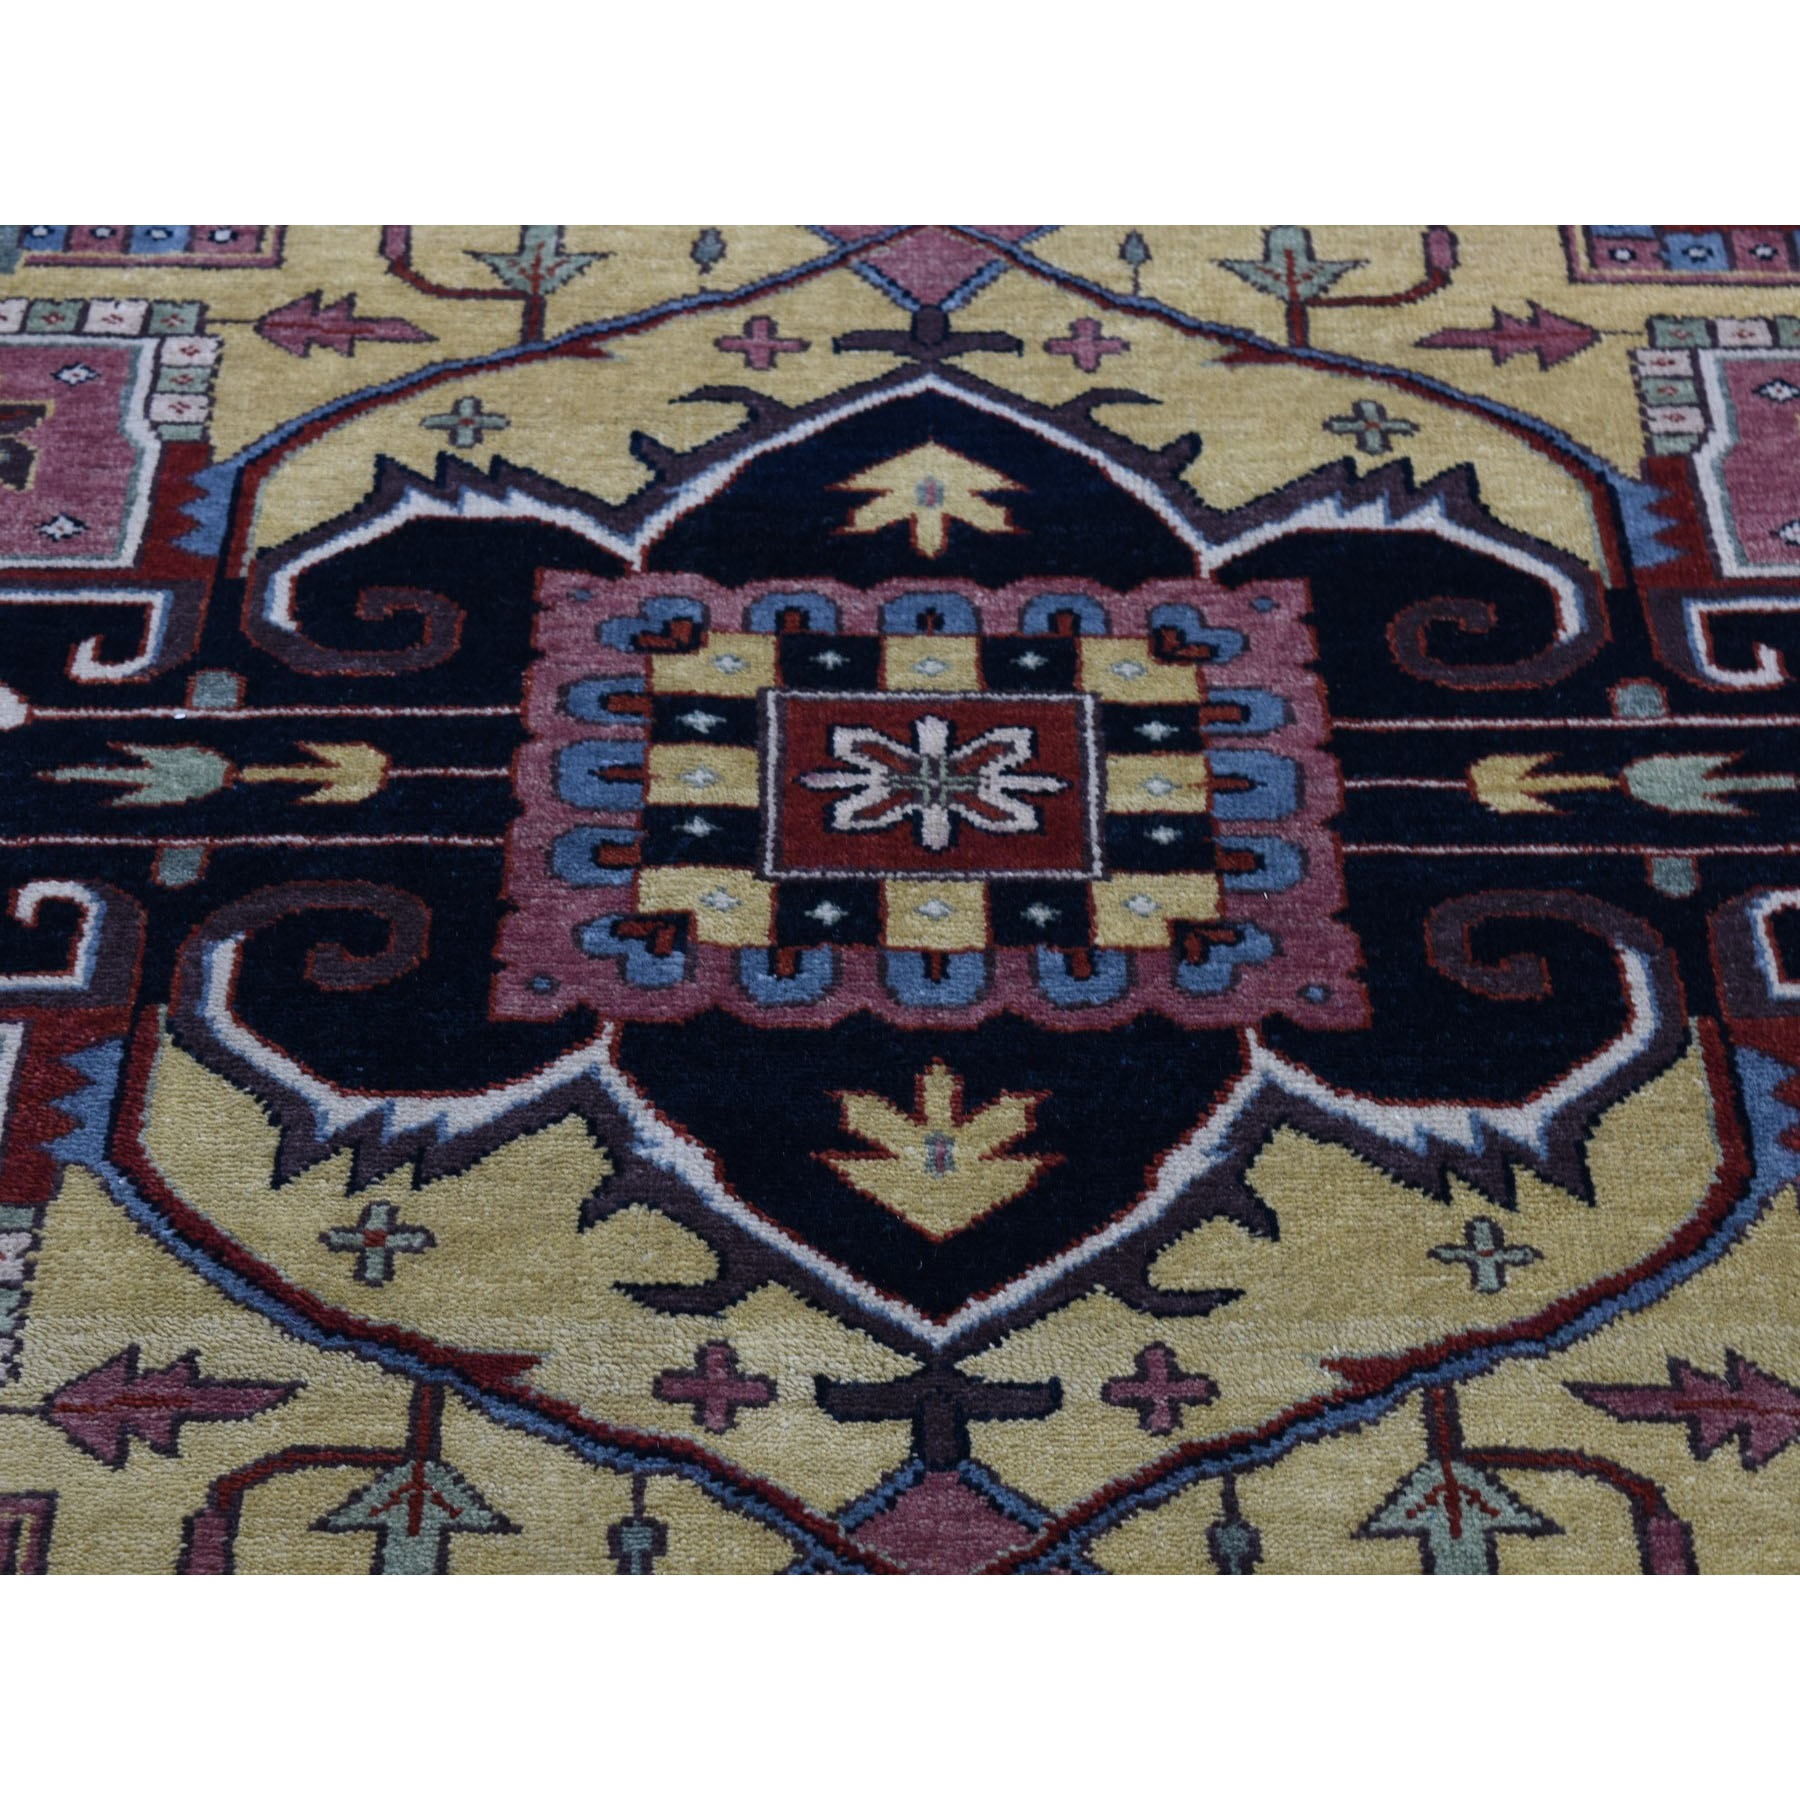 11-7 x15- Oversized Red Heriz Revival Pure Wool Hand Knotted Oriental Rug